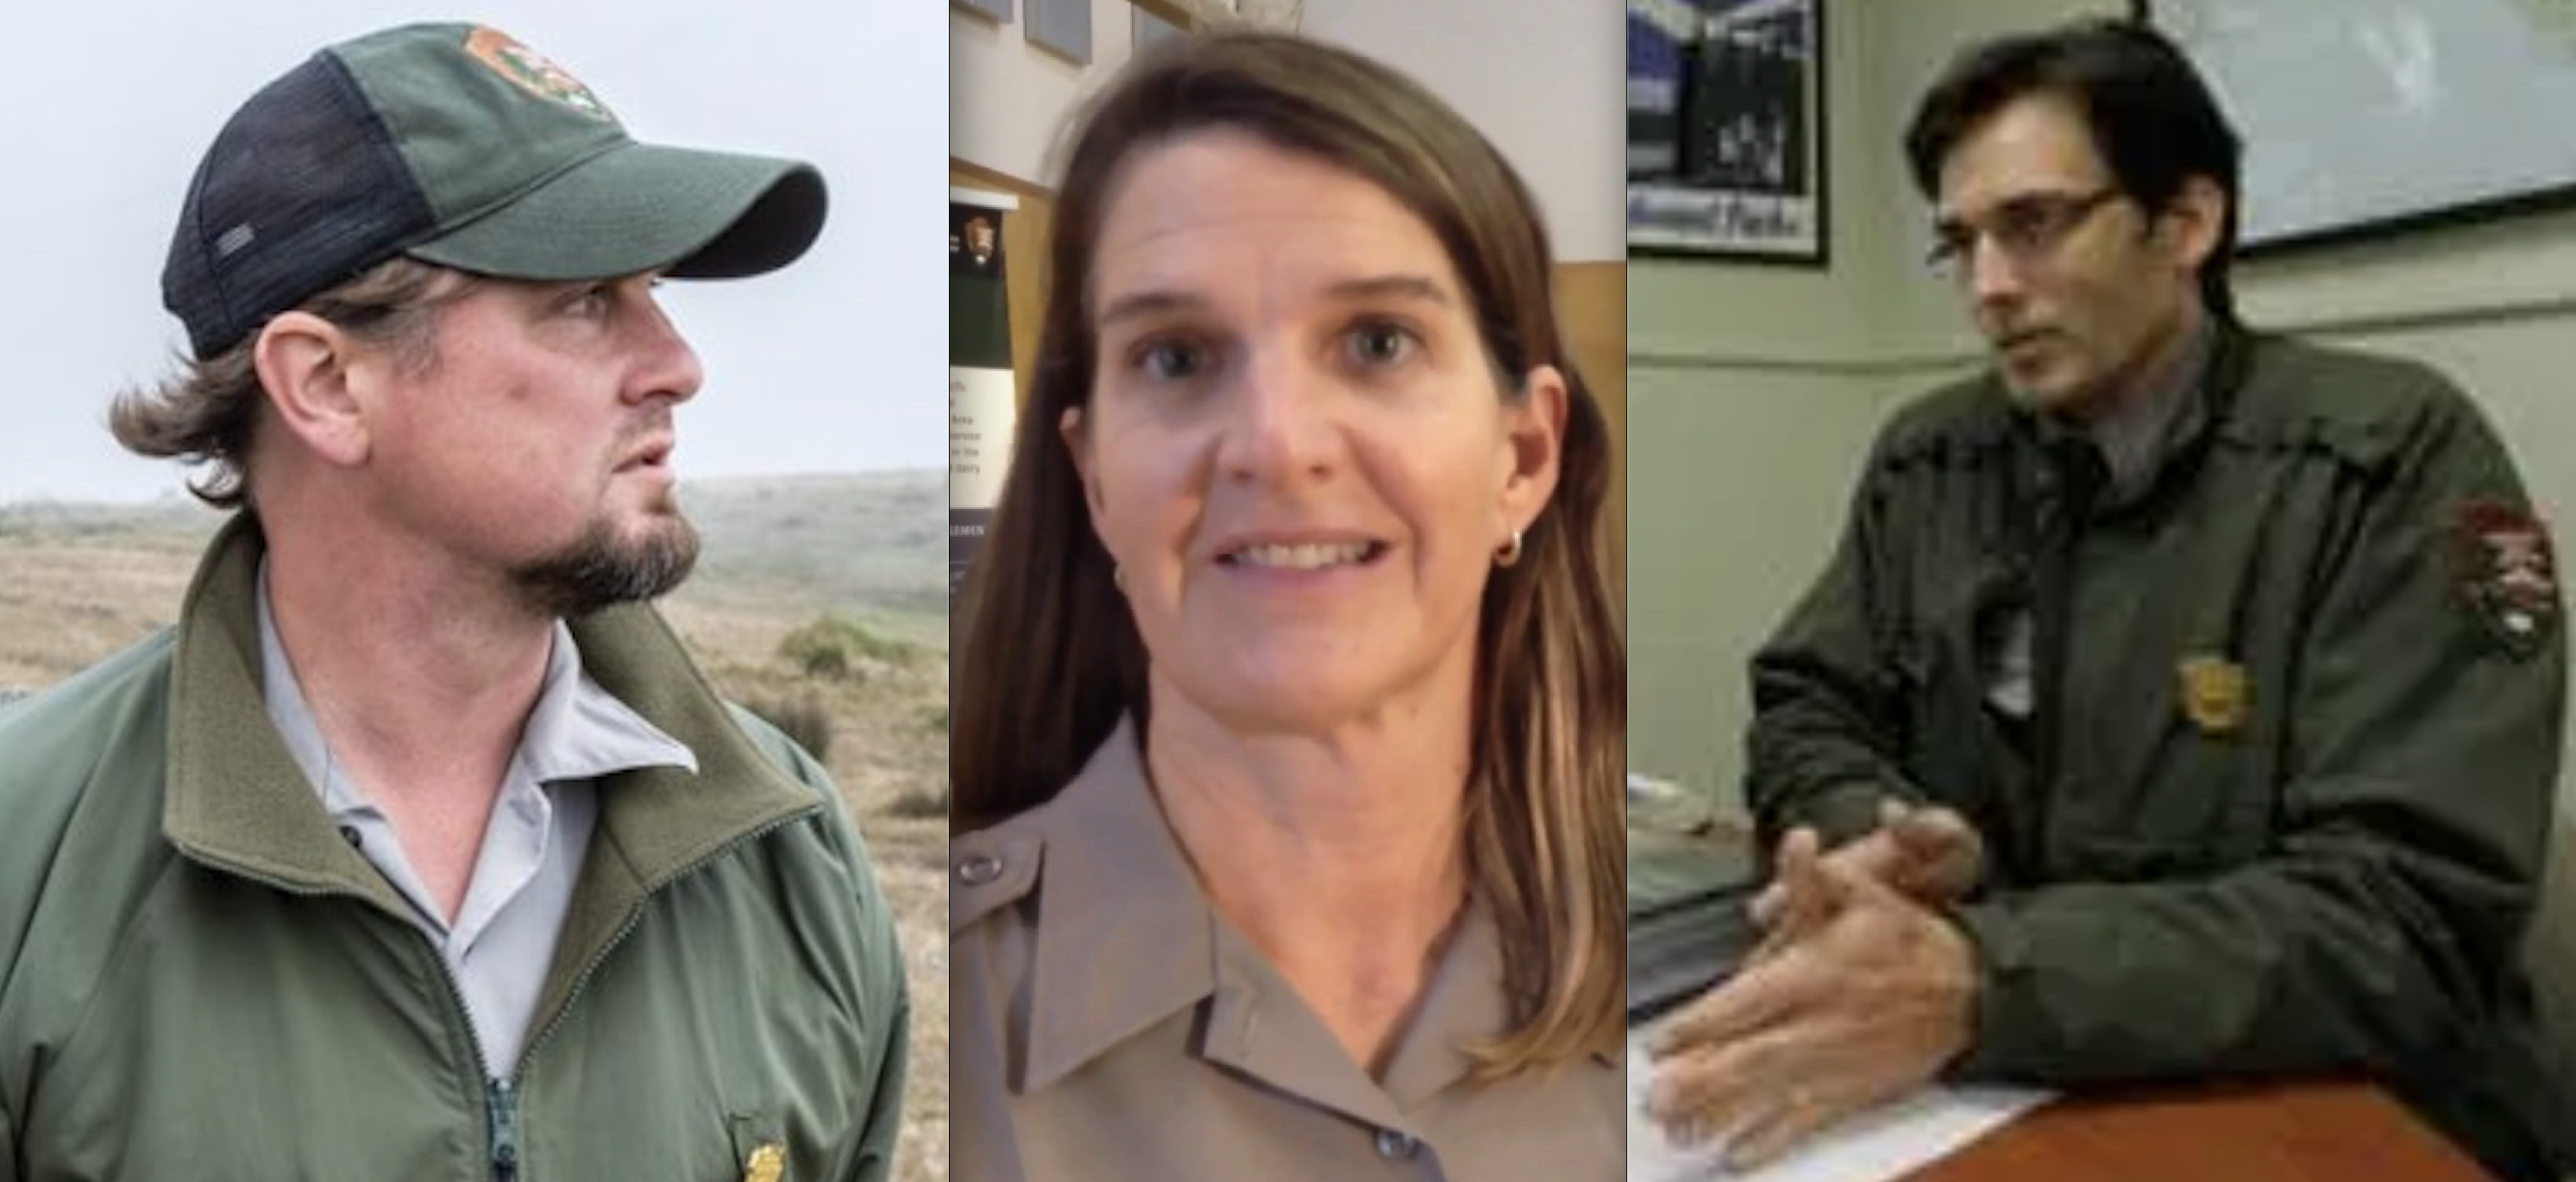 PETITION WATCH: Petition Calls for Firing of National Park Service Leaders over Tule Elk Deaths at Point Reyes